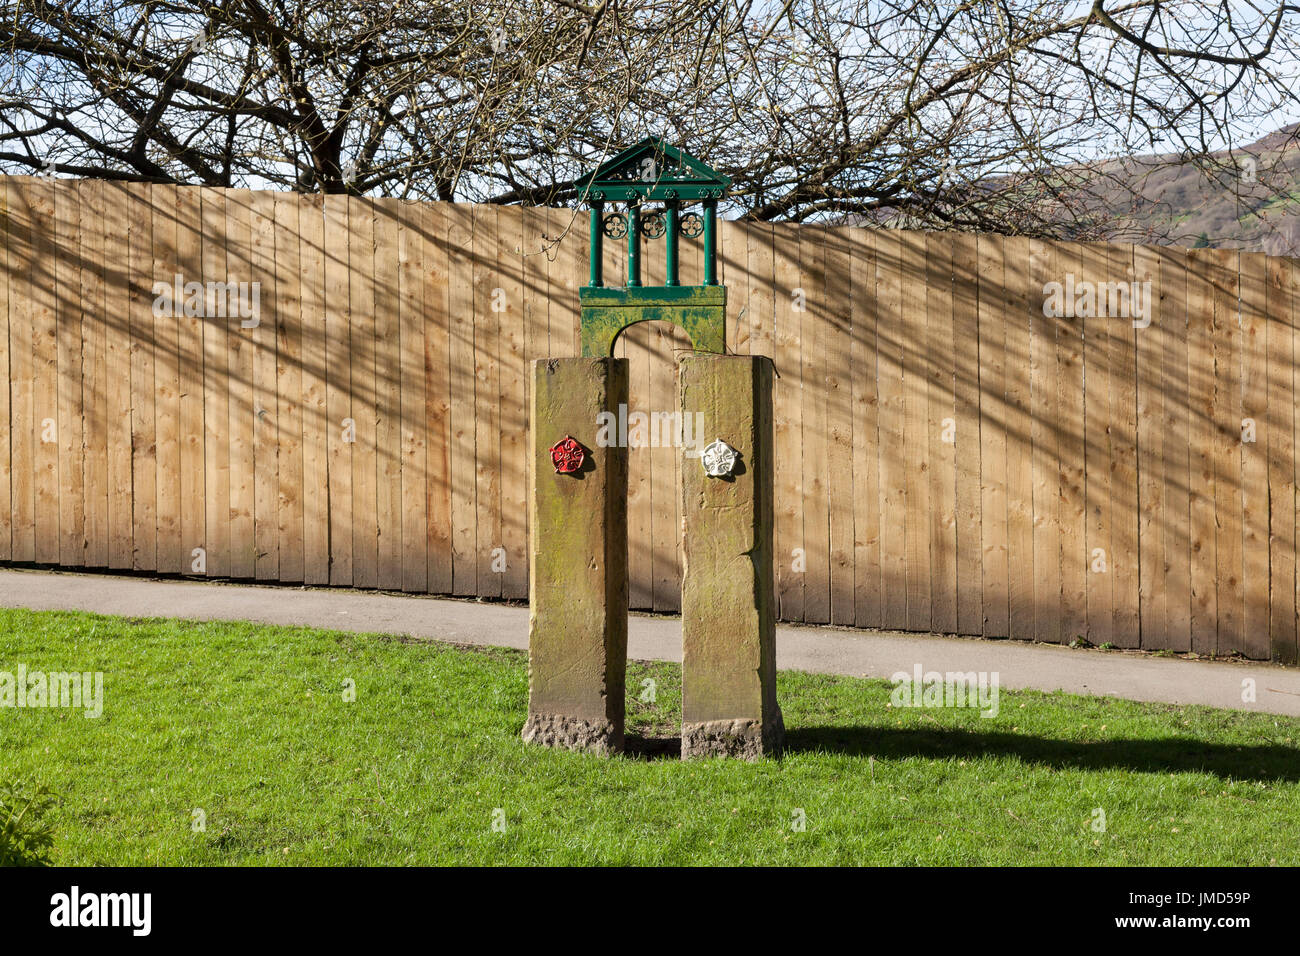 Marker post for the historic border between Lancashire and Yorkshire, Todmorden, West Yorkshire - Stock Image